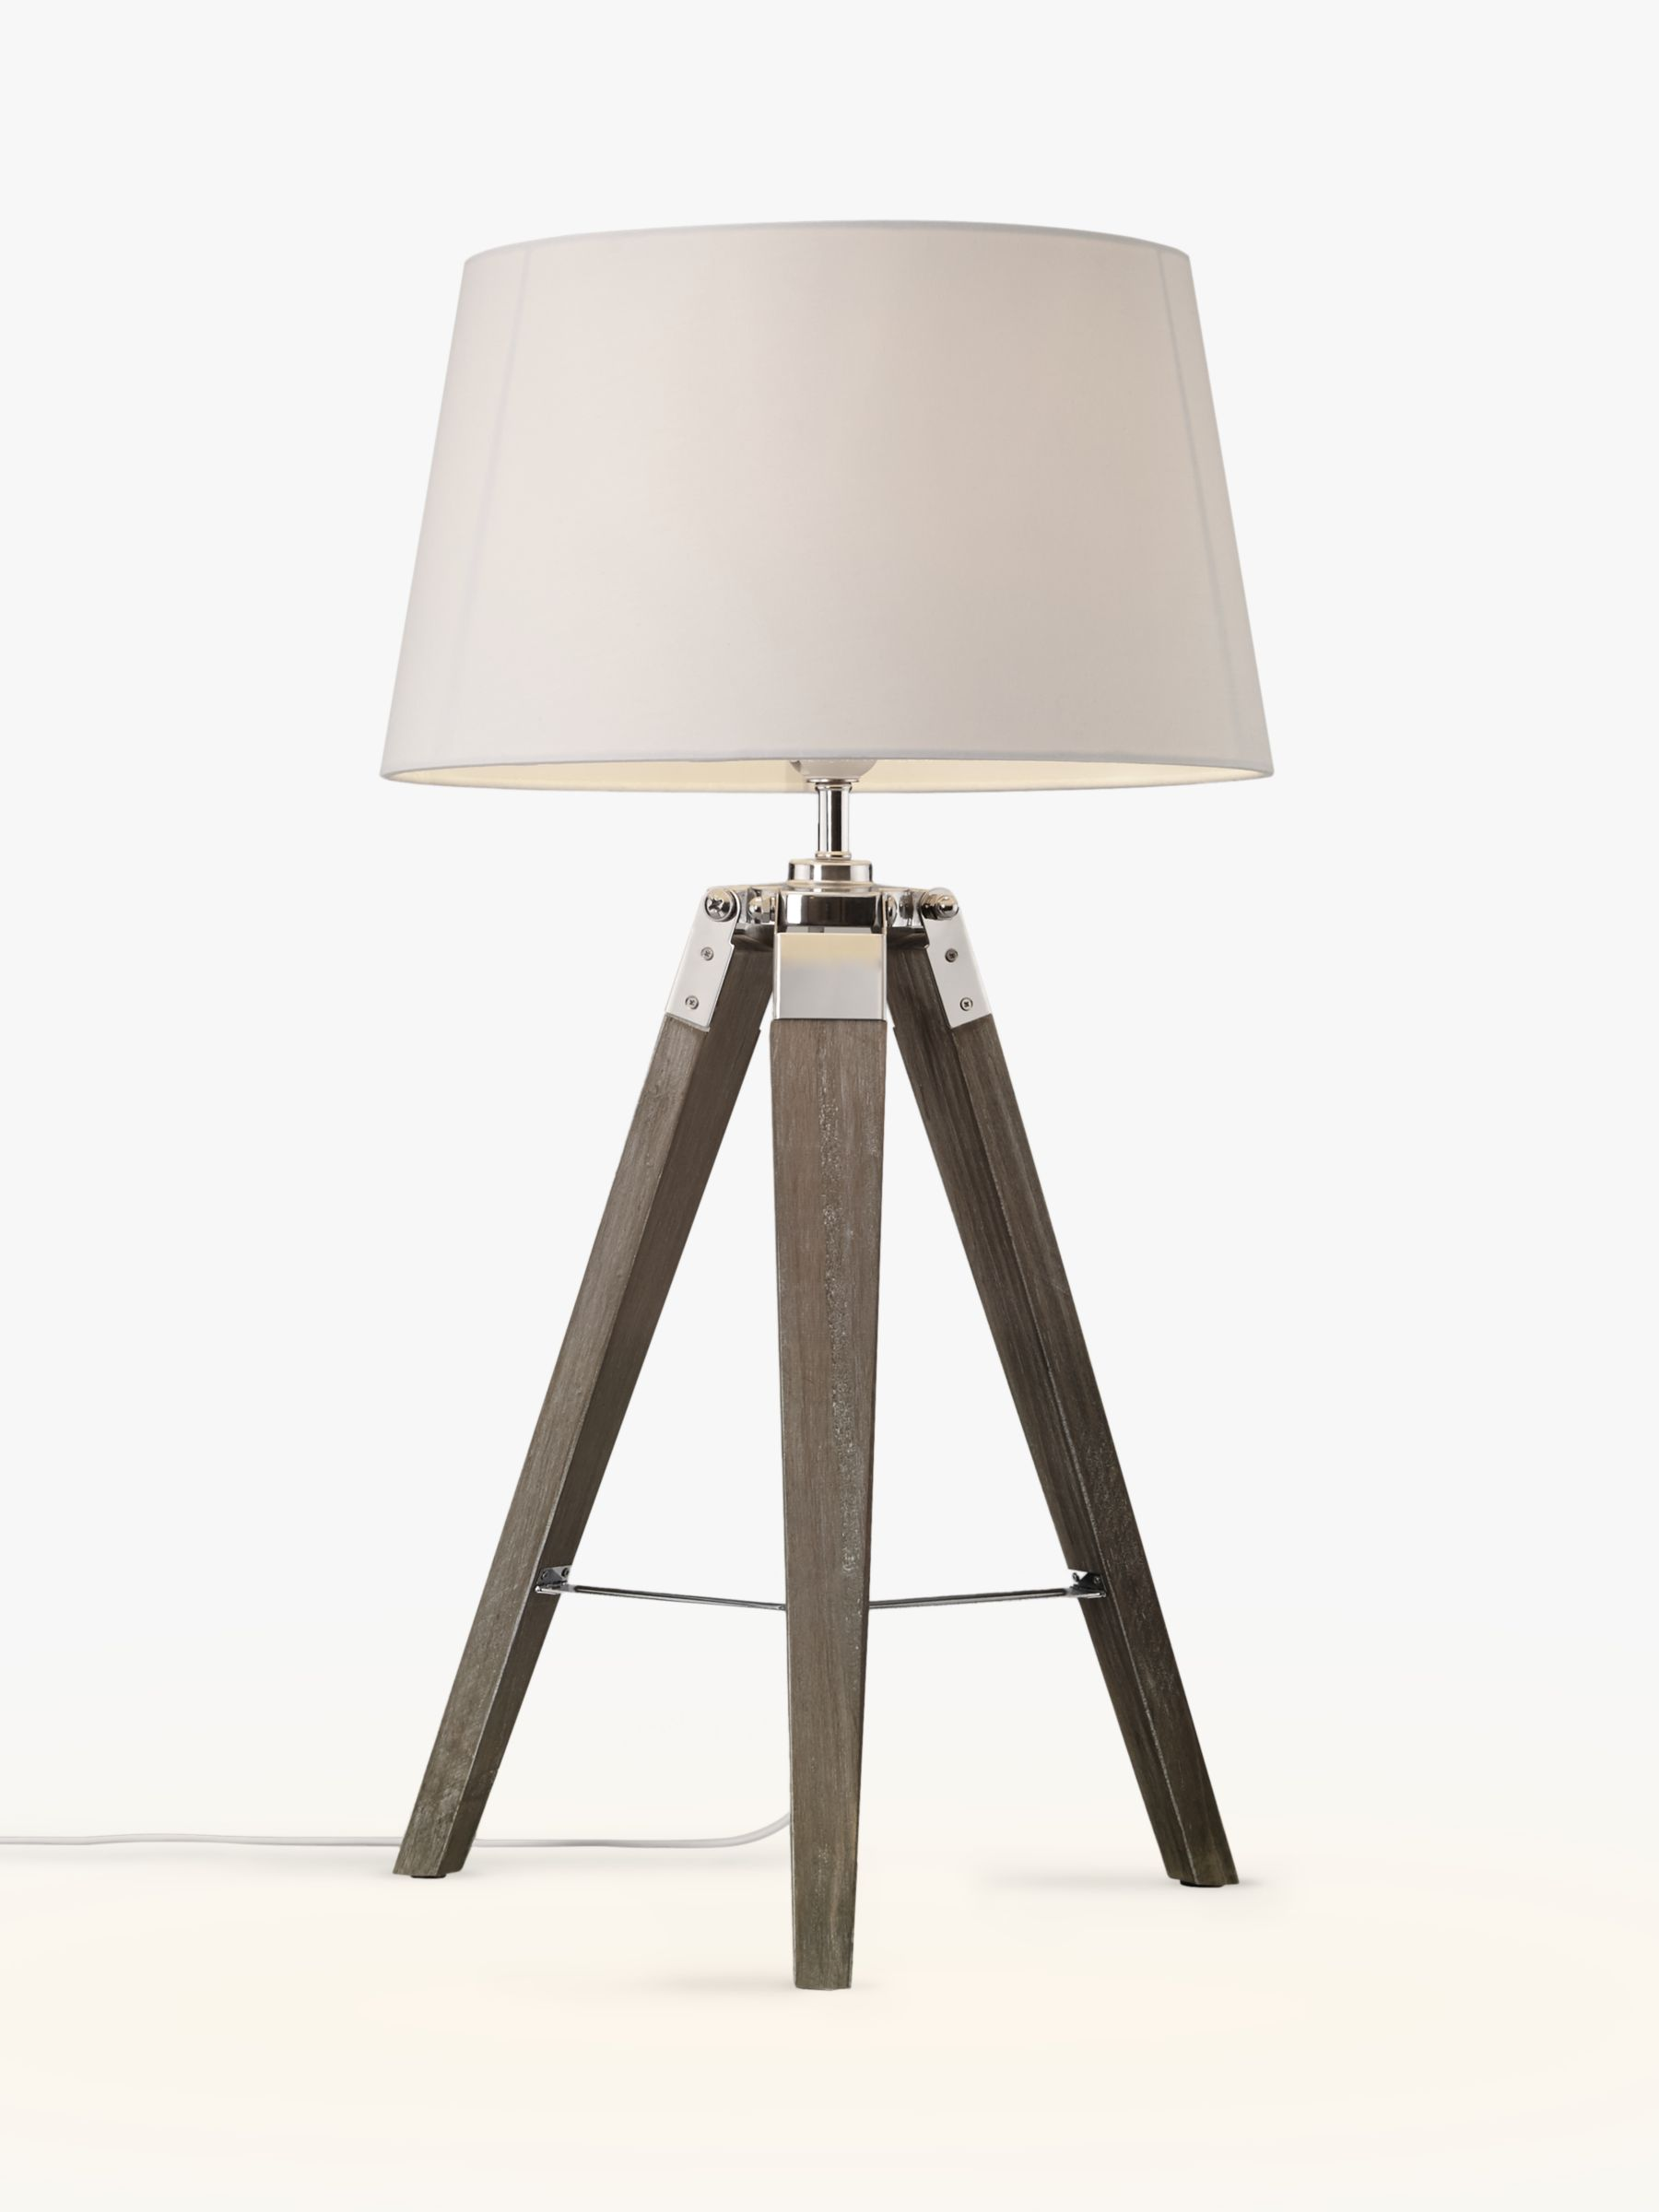 hight resolution of buy john lewis partners jacques tripod table lamp grey online at johnlewis